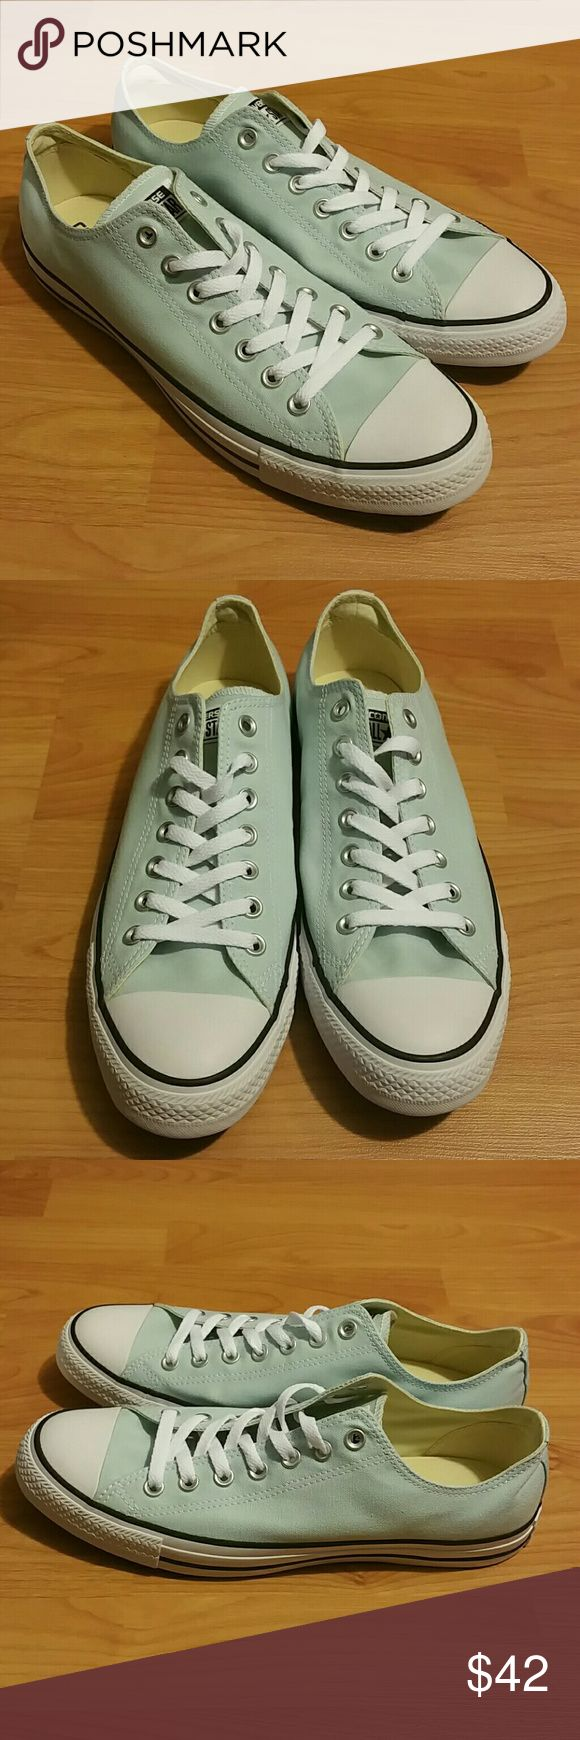 Mens converse all star New. Size 10. Never worn. Color light blue. Converse Shoes Sneakers